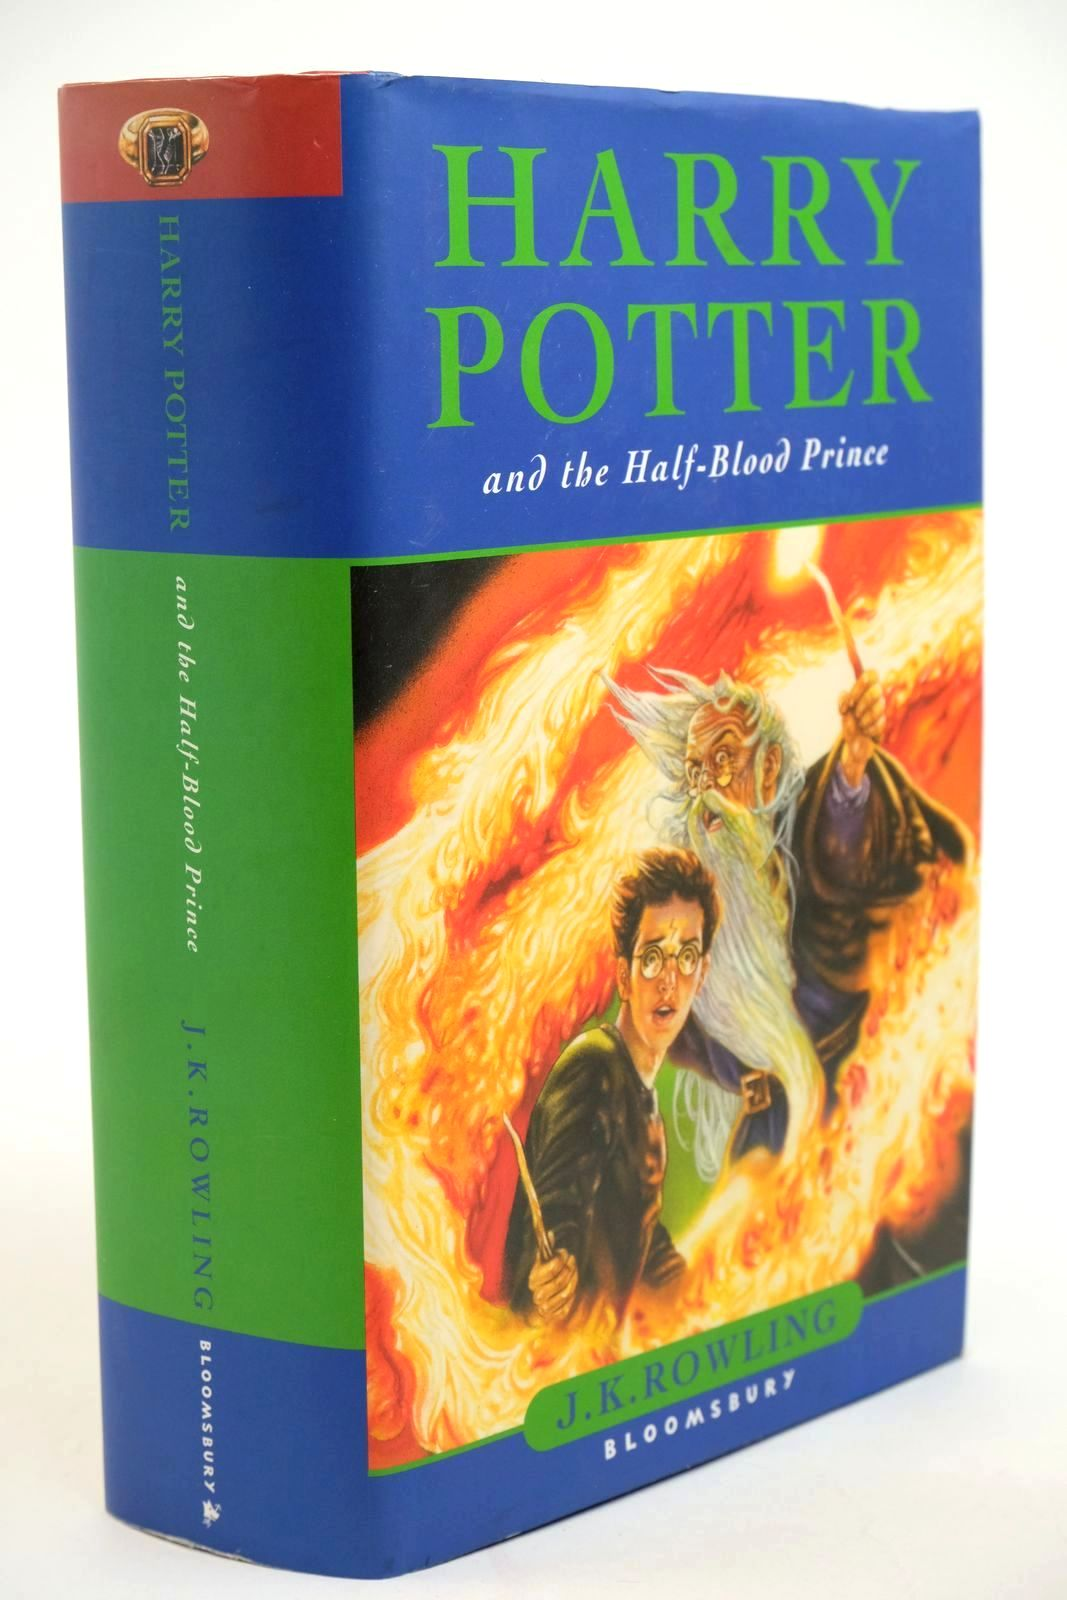 Photo of HARRY POTTER AND THE HALF-BLOOD PRINCE written by Rowling, J.K. published by Bloomsbury (STOCK CODE: 1321430)  for sale by Stella & Rose's Books